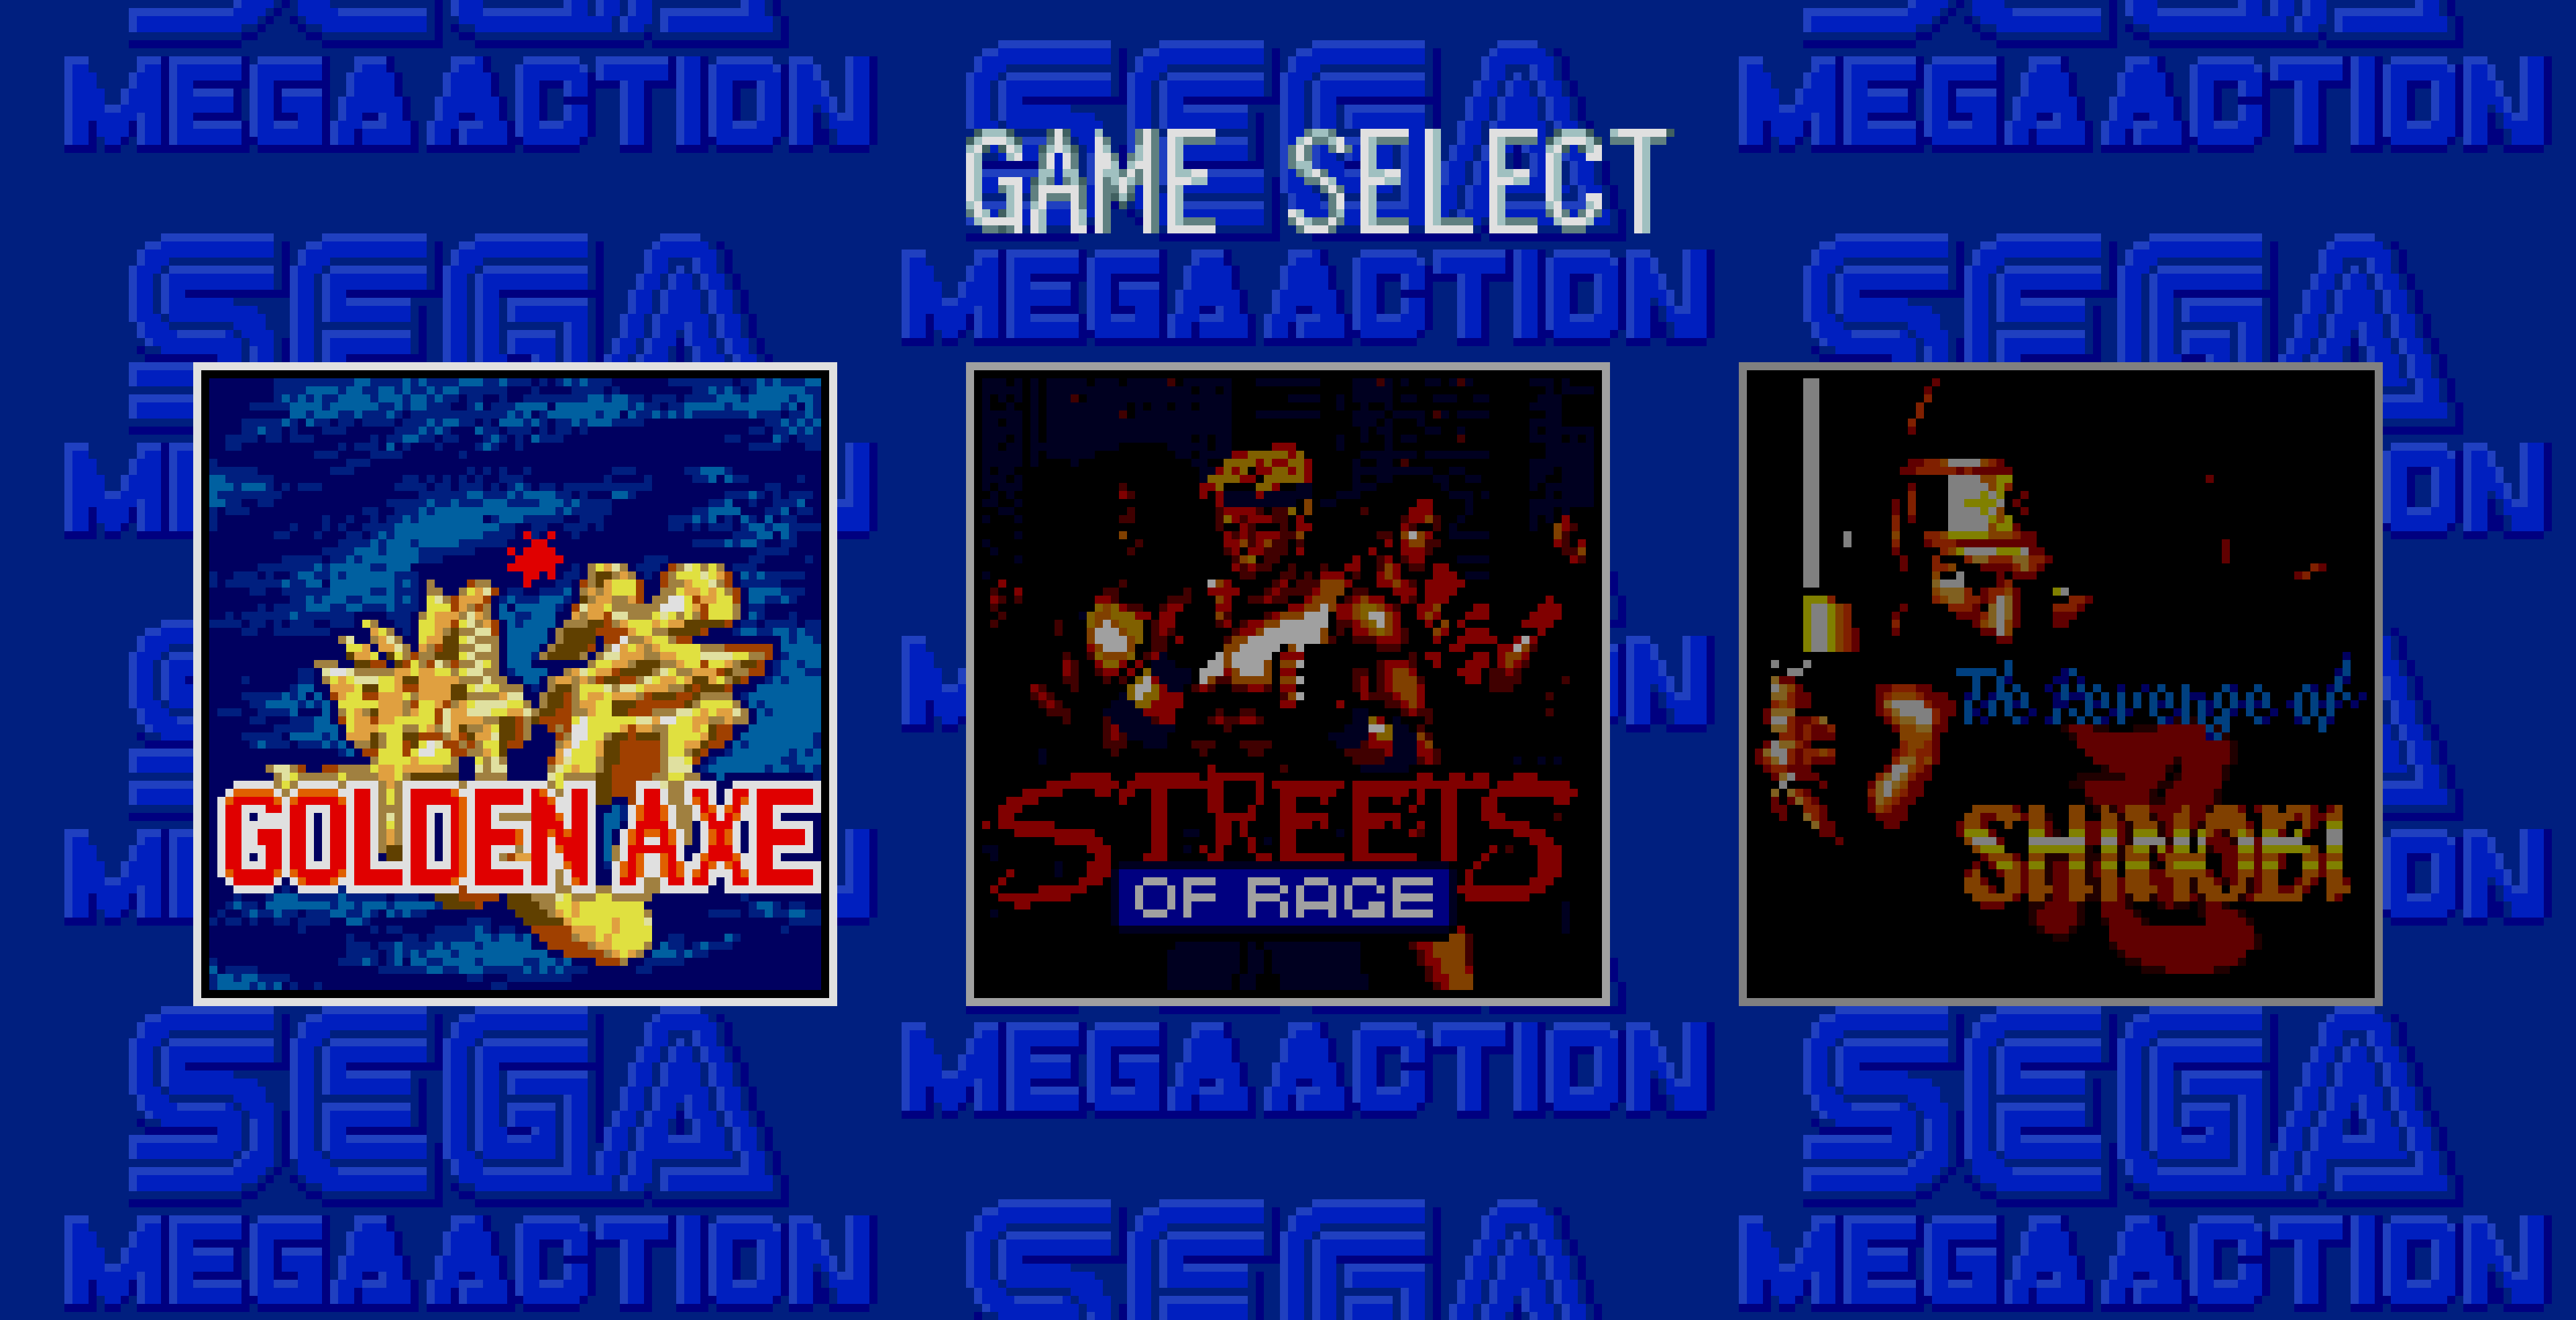 Golden Axe on the Mega Games 2 title screen.